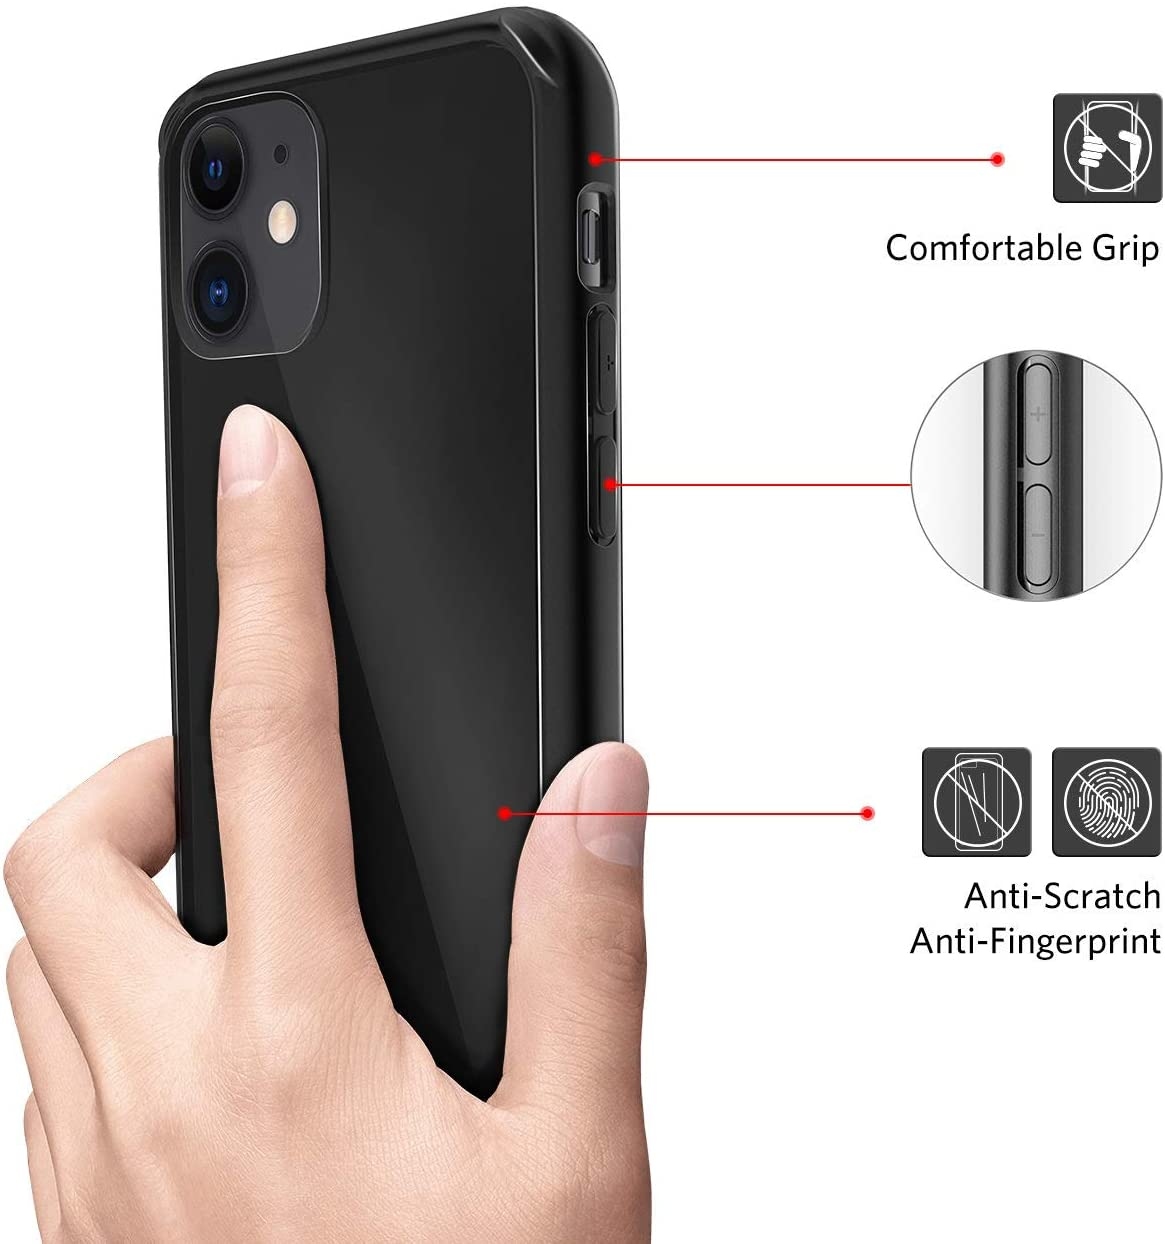 Mkeke Compatible with iPhone 11 Case, Clear iPhone 11 Cases Cover for iPhone 11 6.1 Inch-Black